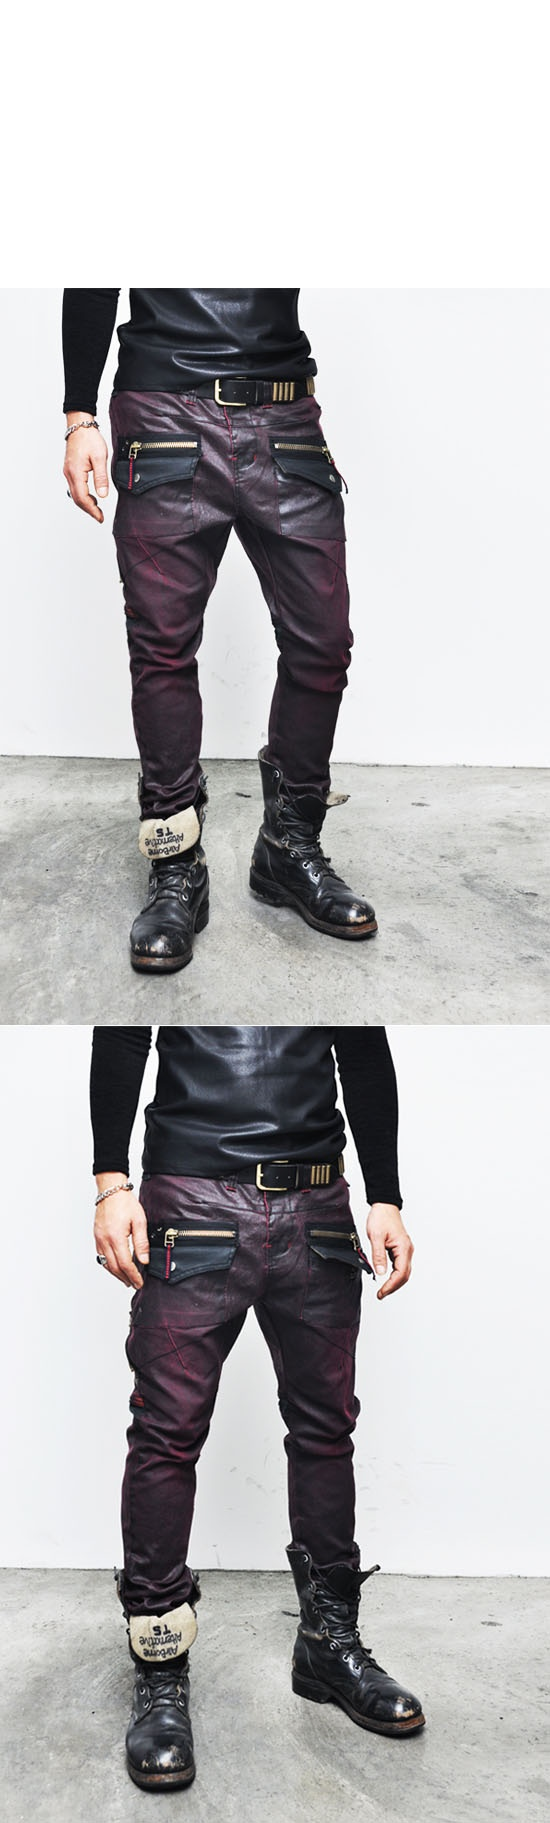 Bottoms :: Jeans :: Wax Coated Red Slim Zipper Baggy-Jeans 121 - Mens Fashion Clothing For An Attractive Guy Look